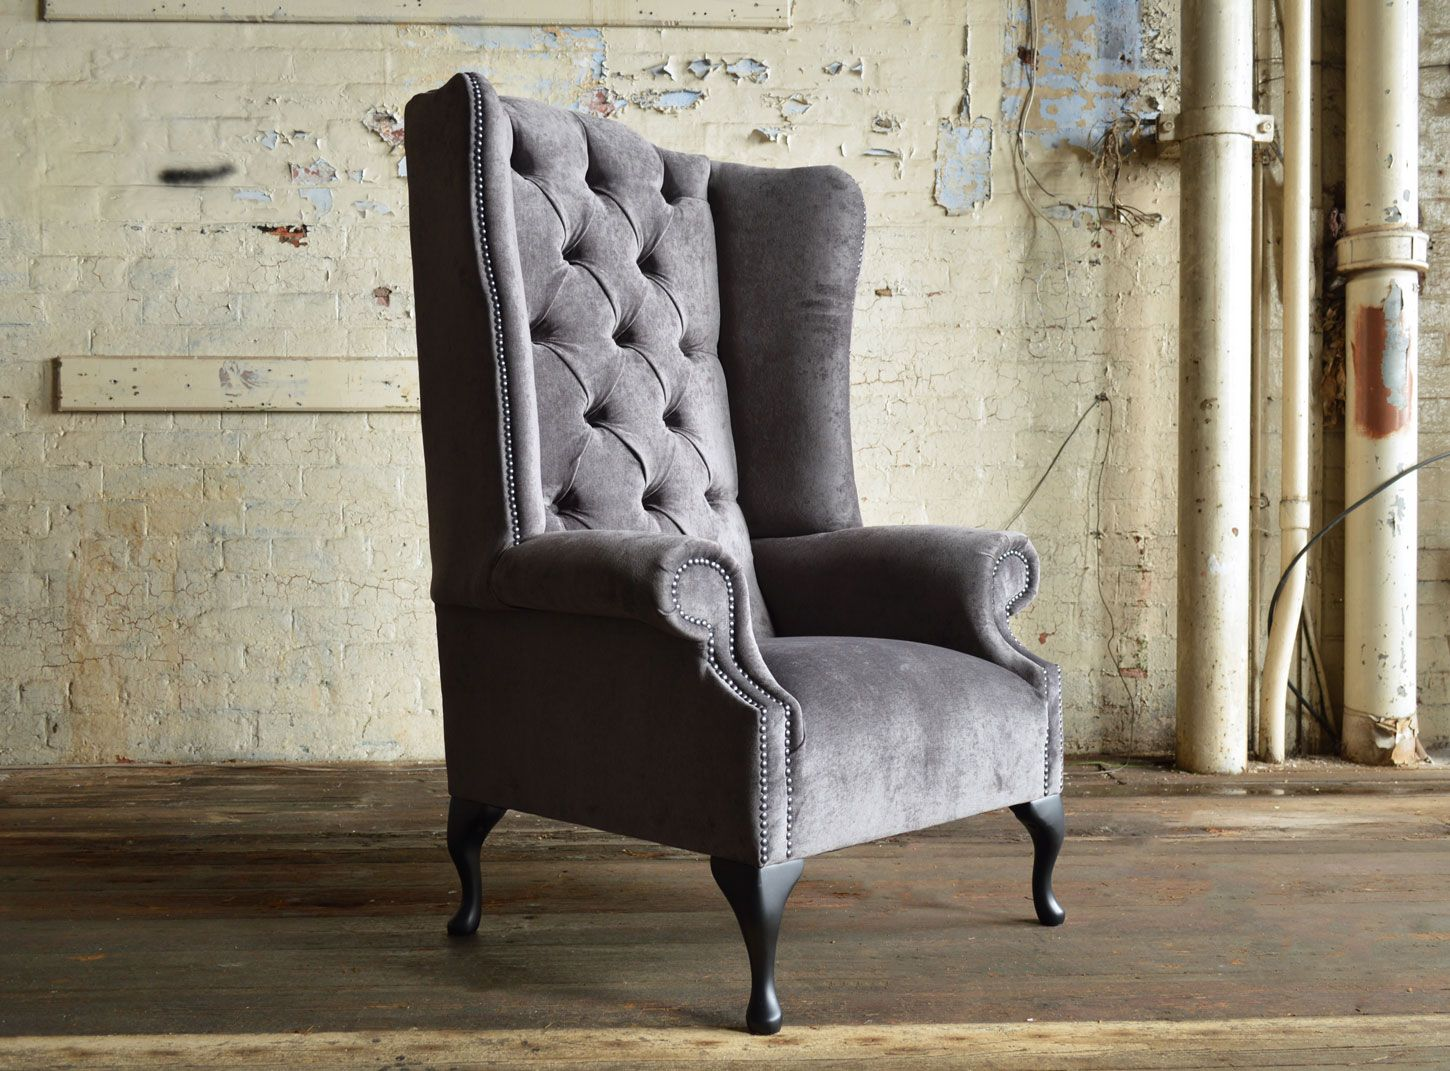 Seater queen anne high back wing sofa uk manufactured antique green - Modern British Handmade Aldwick Deep Buttoned Chesterfield Wing Back Chair Shown Slate Naples Velvet Chesterfield Sofasarm Chairshigh Chairsqueen